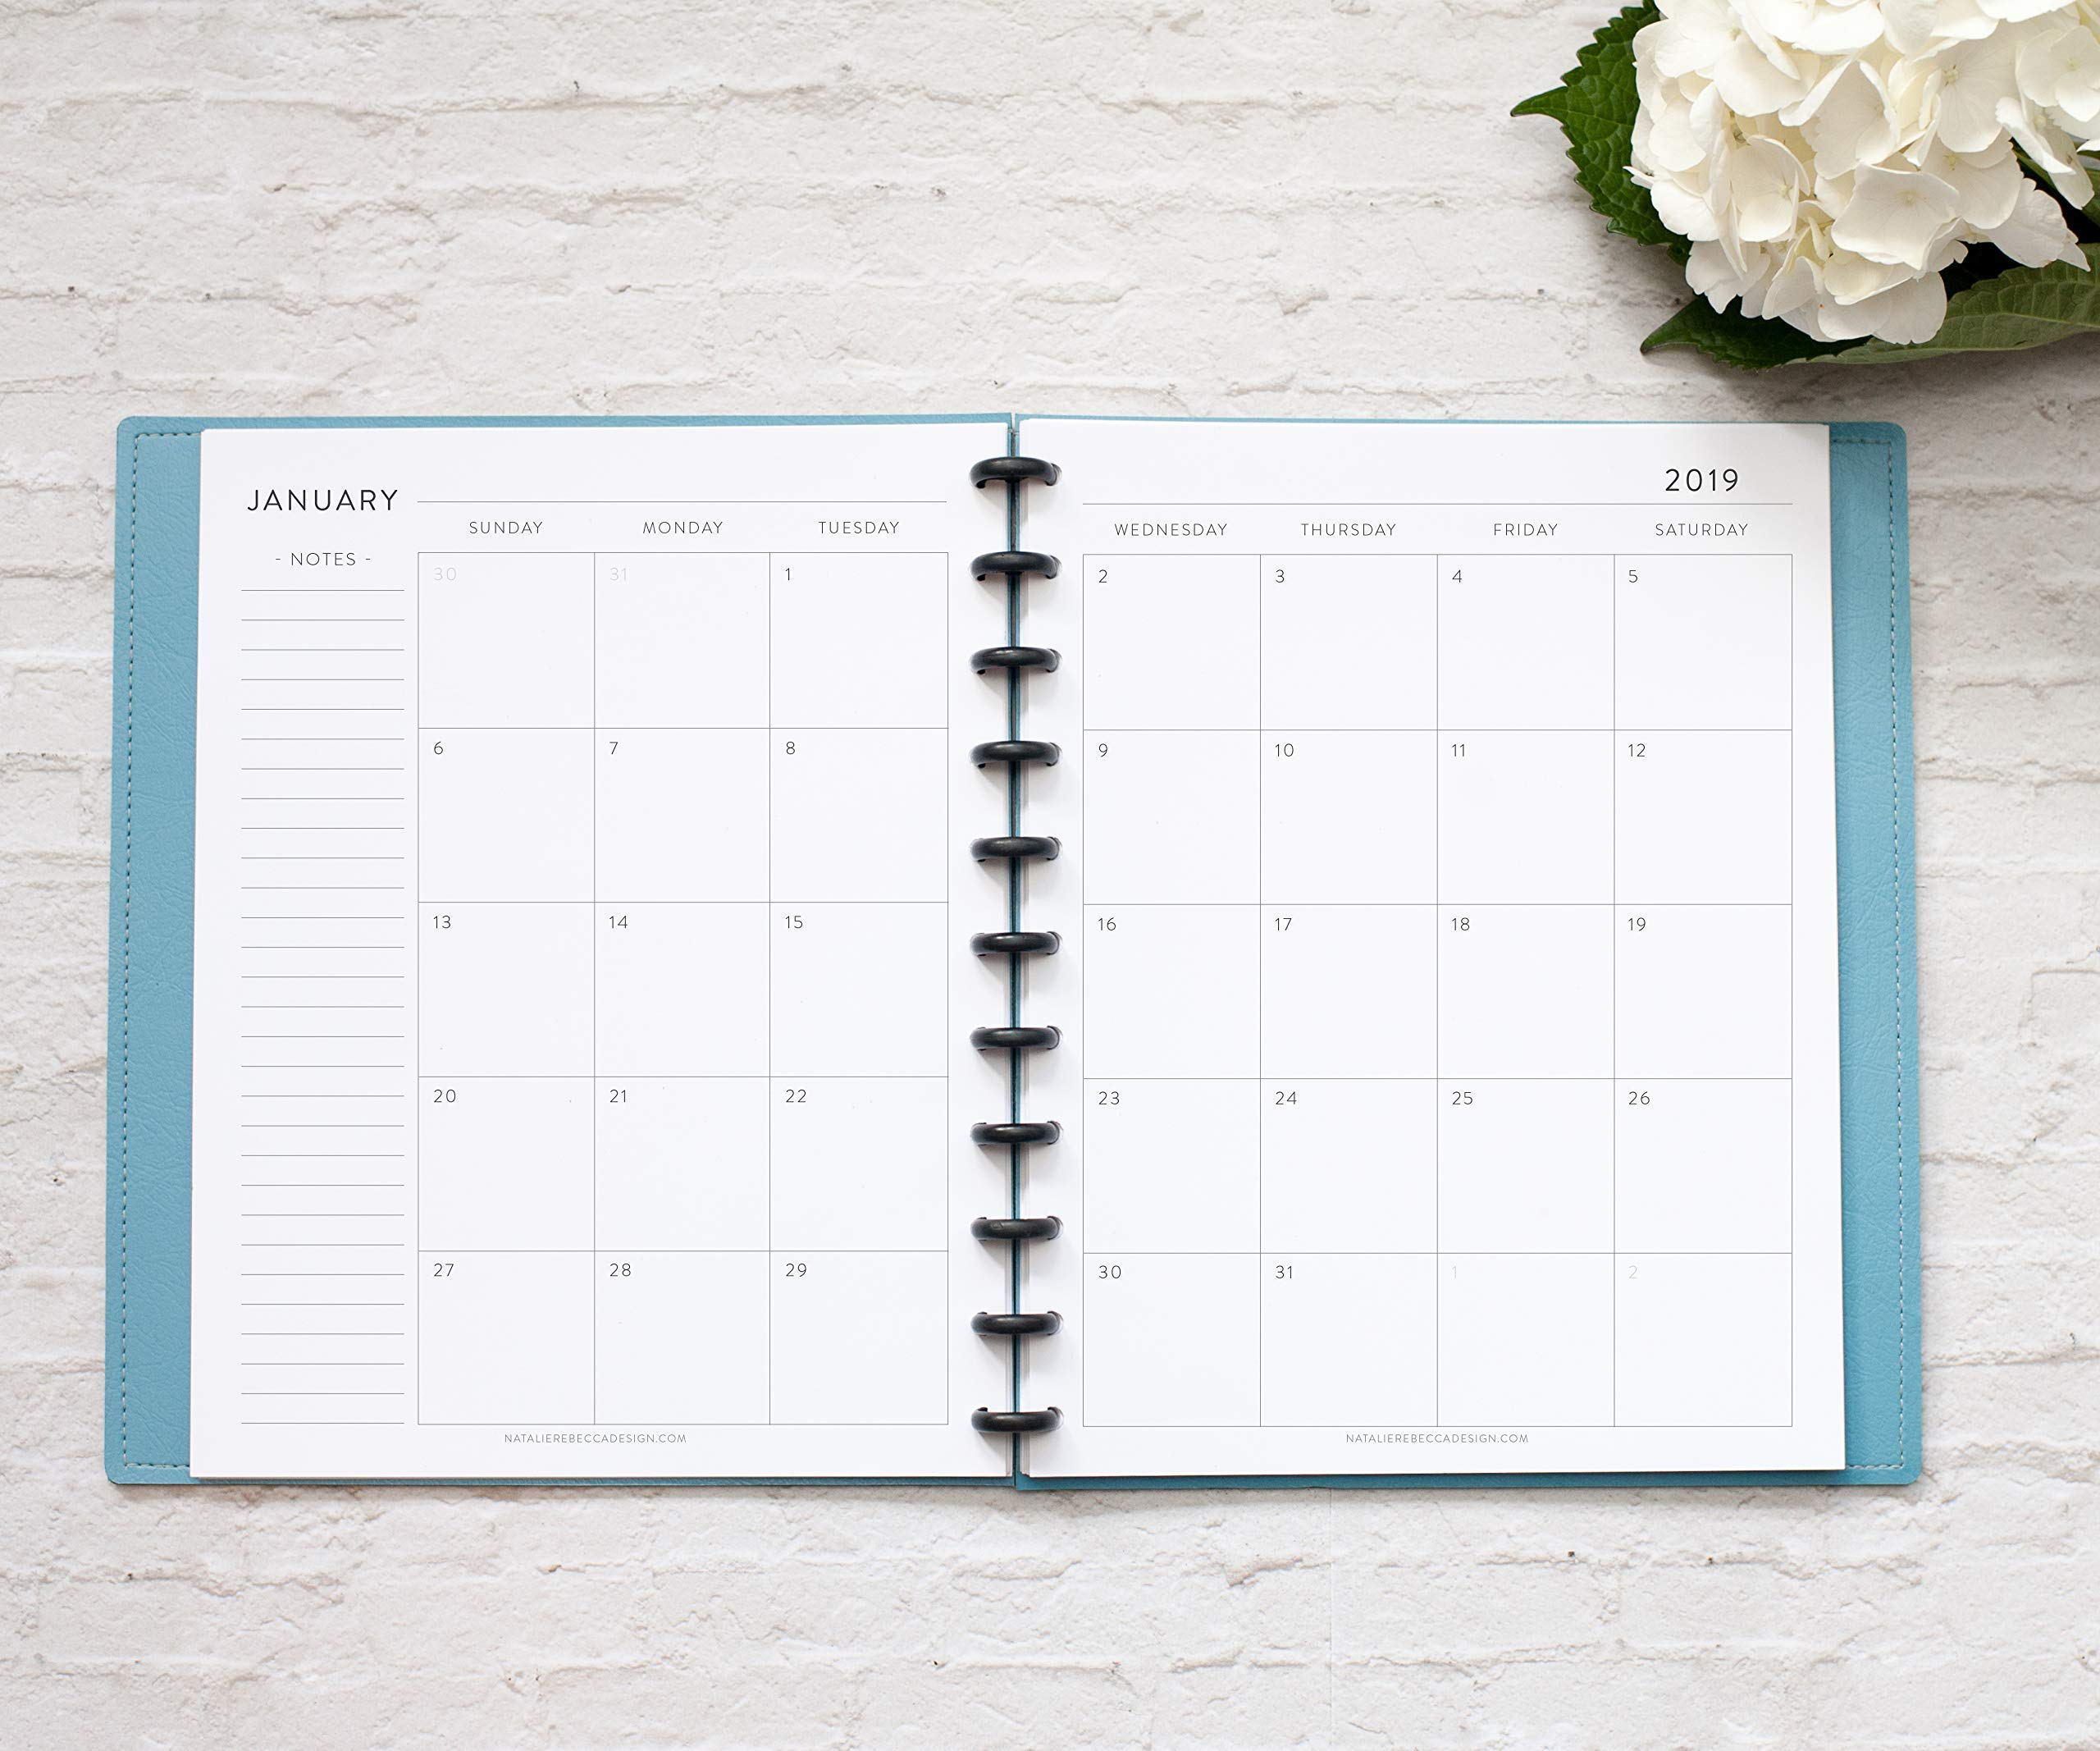 2019 Monthly Calendar for Disc-Bound Planners, Fits 11-Disc Circa Letter, Arc by Staples, TUL by Office Depot, Letter Size 8.5''x11'' Classic (Notebook Not Included)